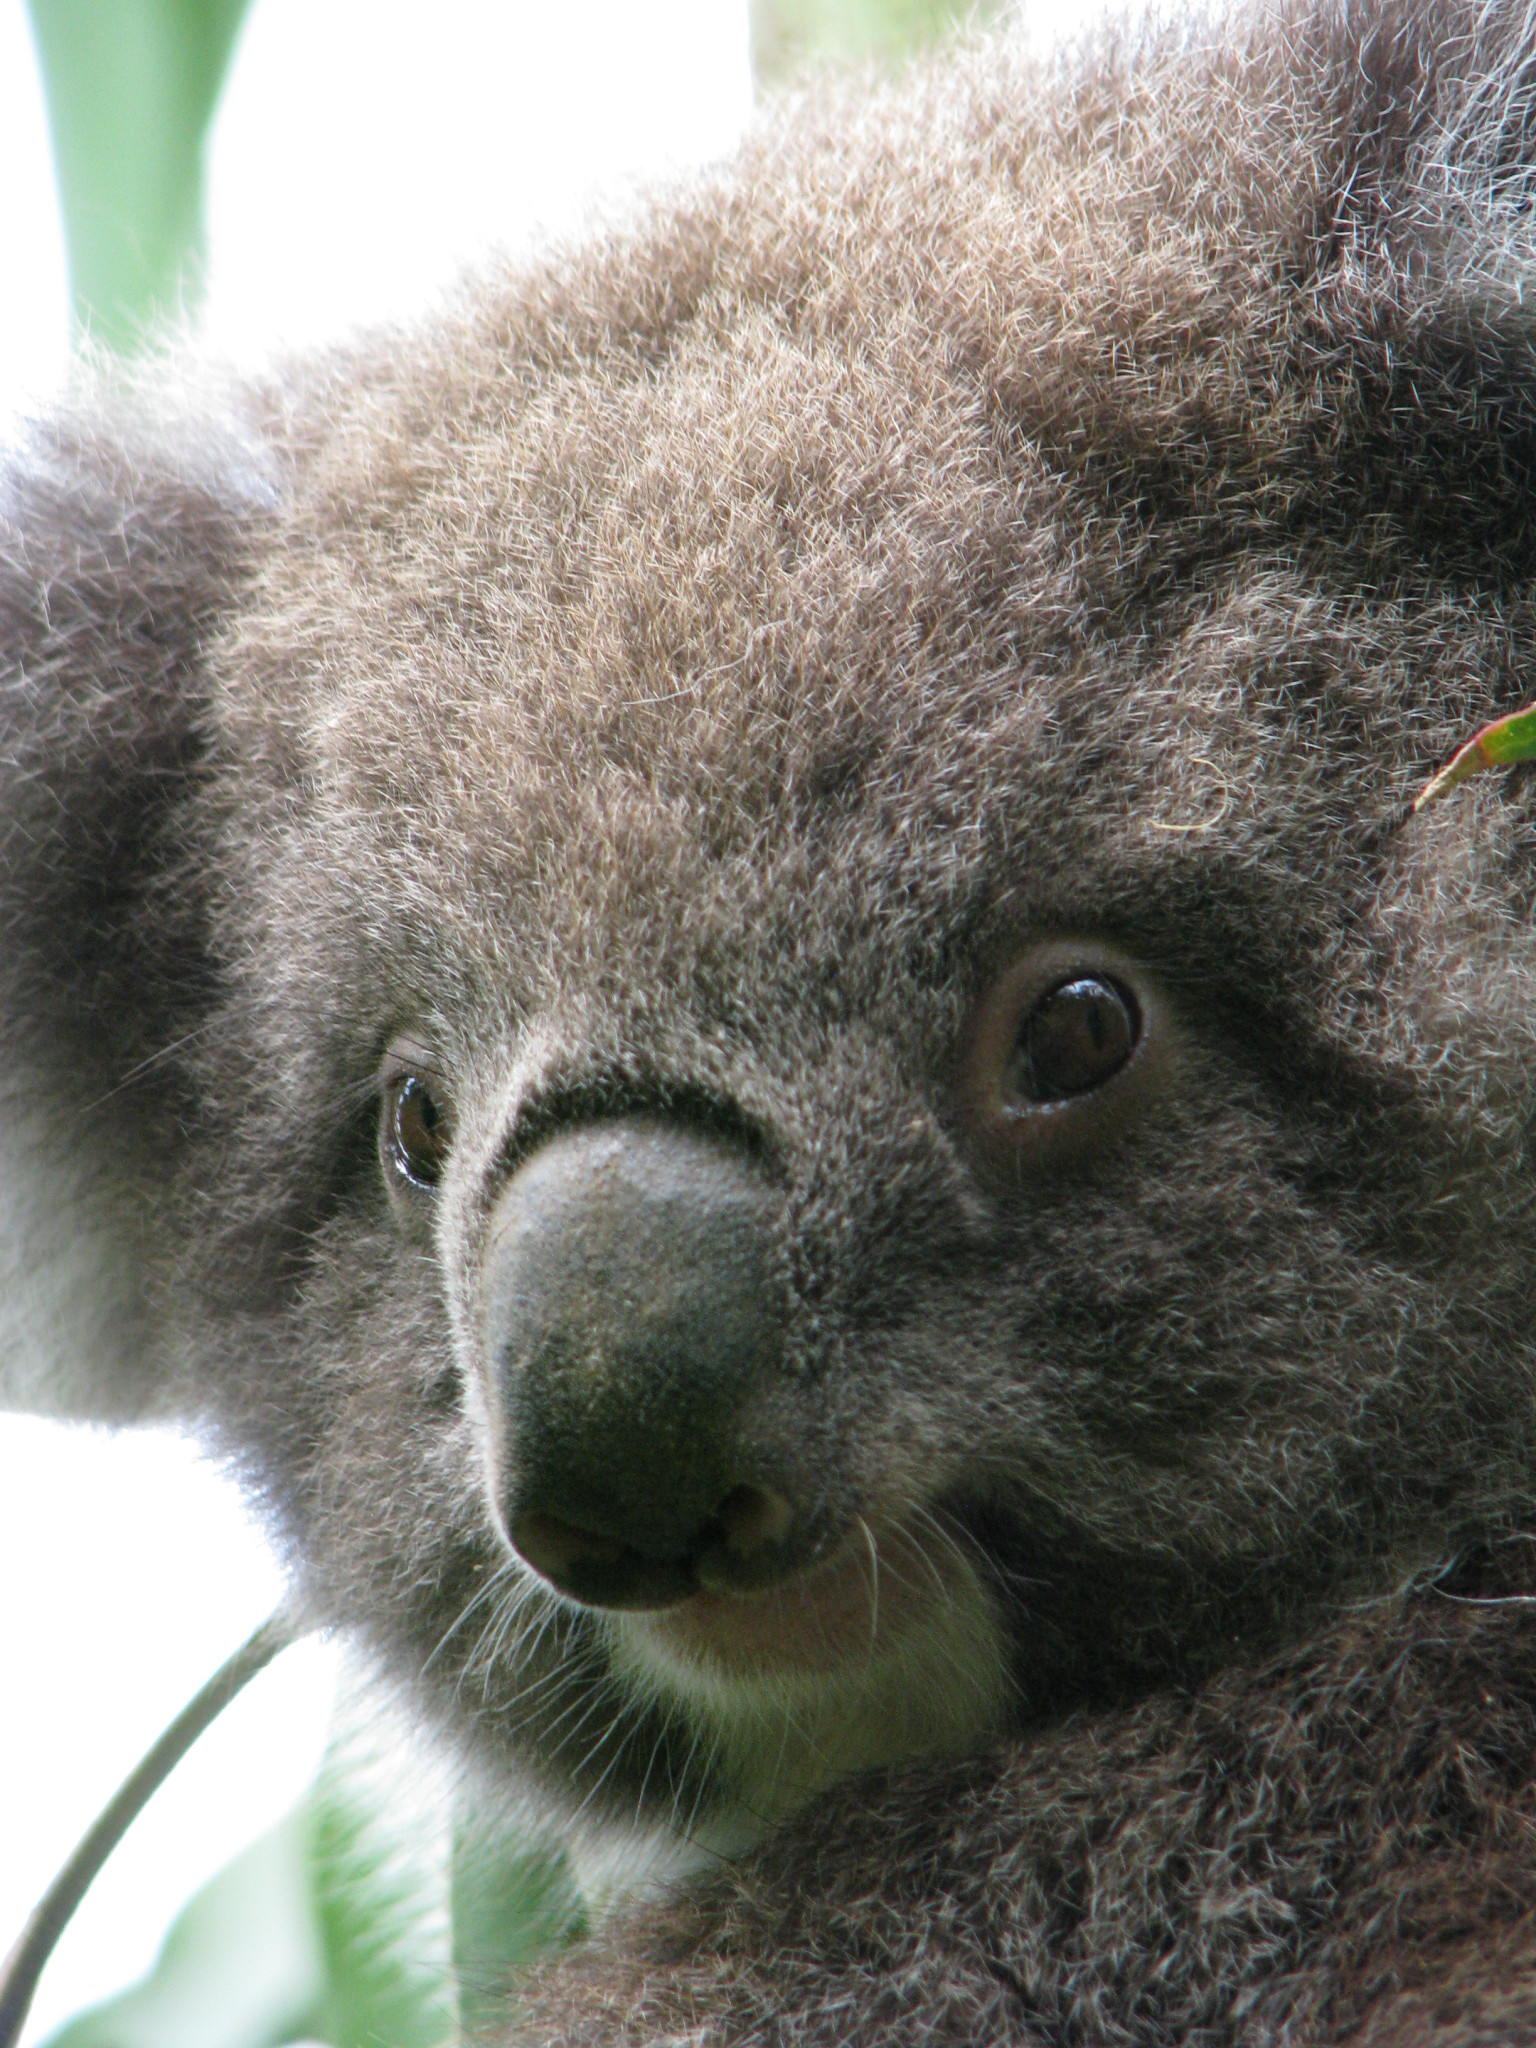 kennett river koala great ocean road routes and trips. Black Bedroom Furniture Sets. Home Design Ideas